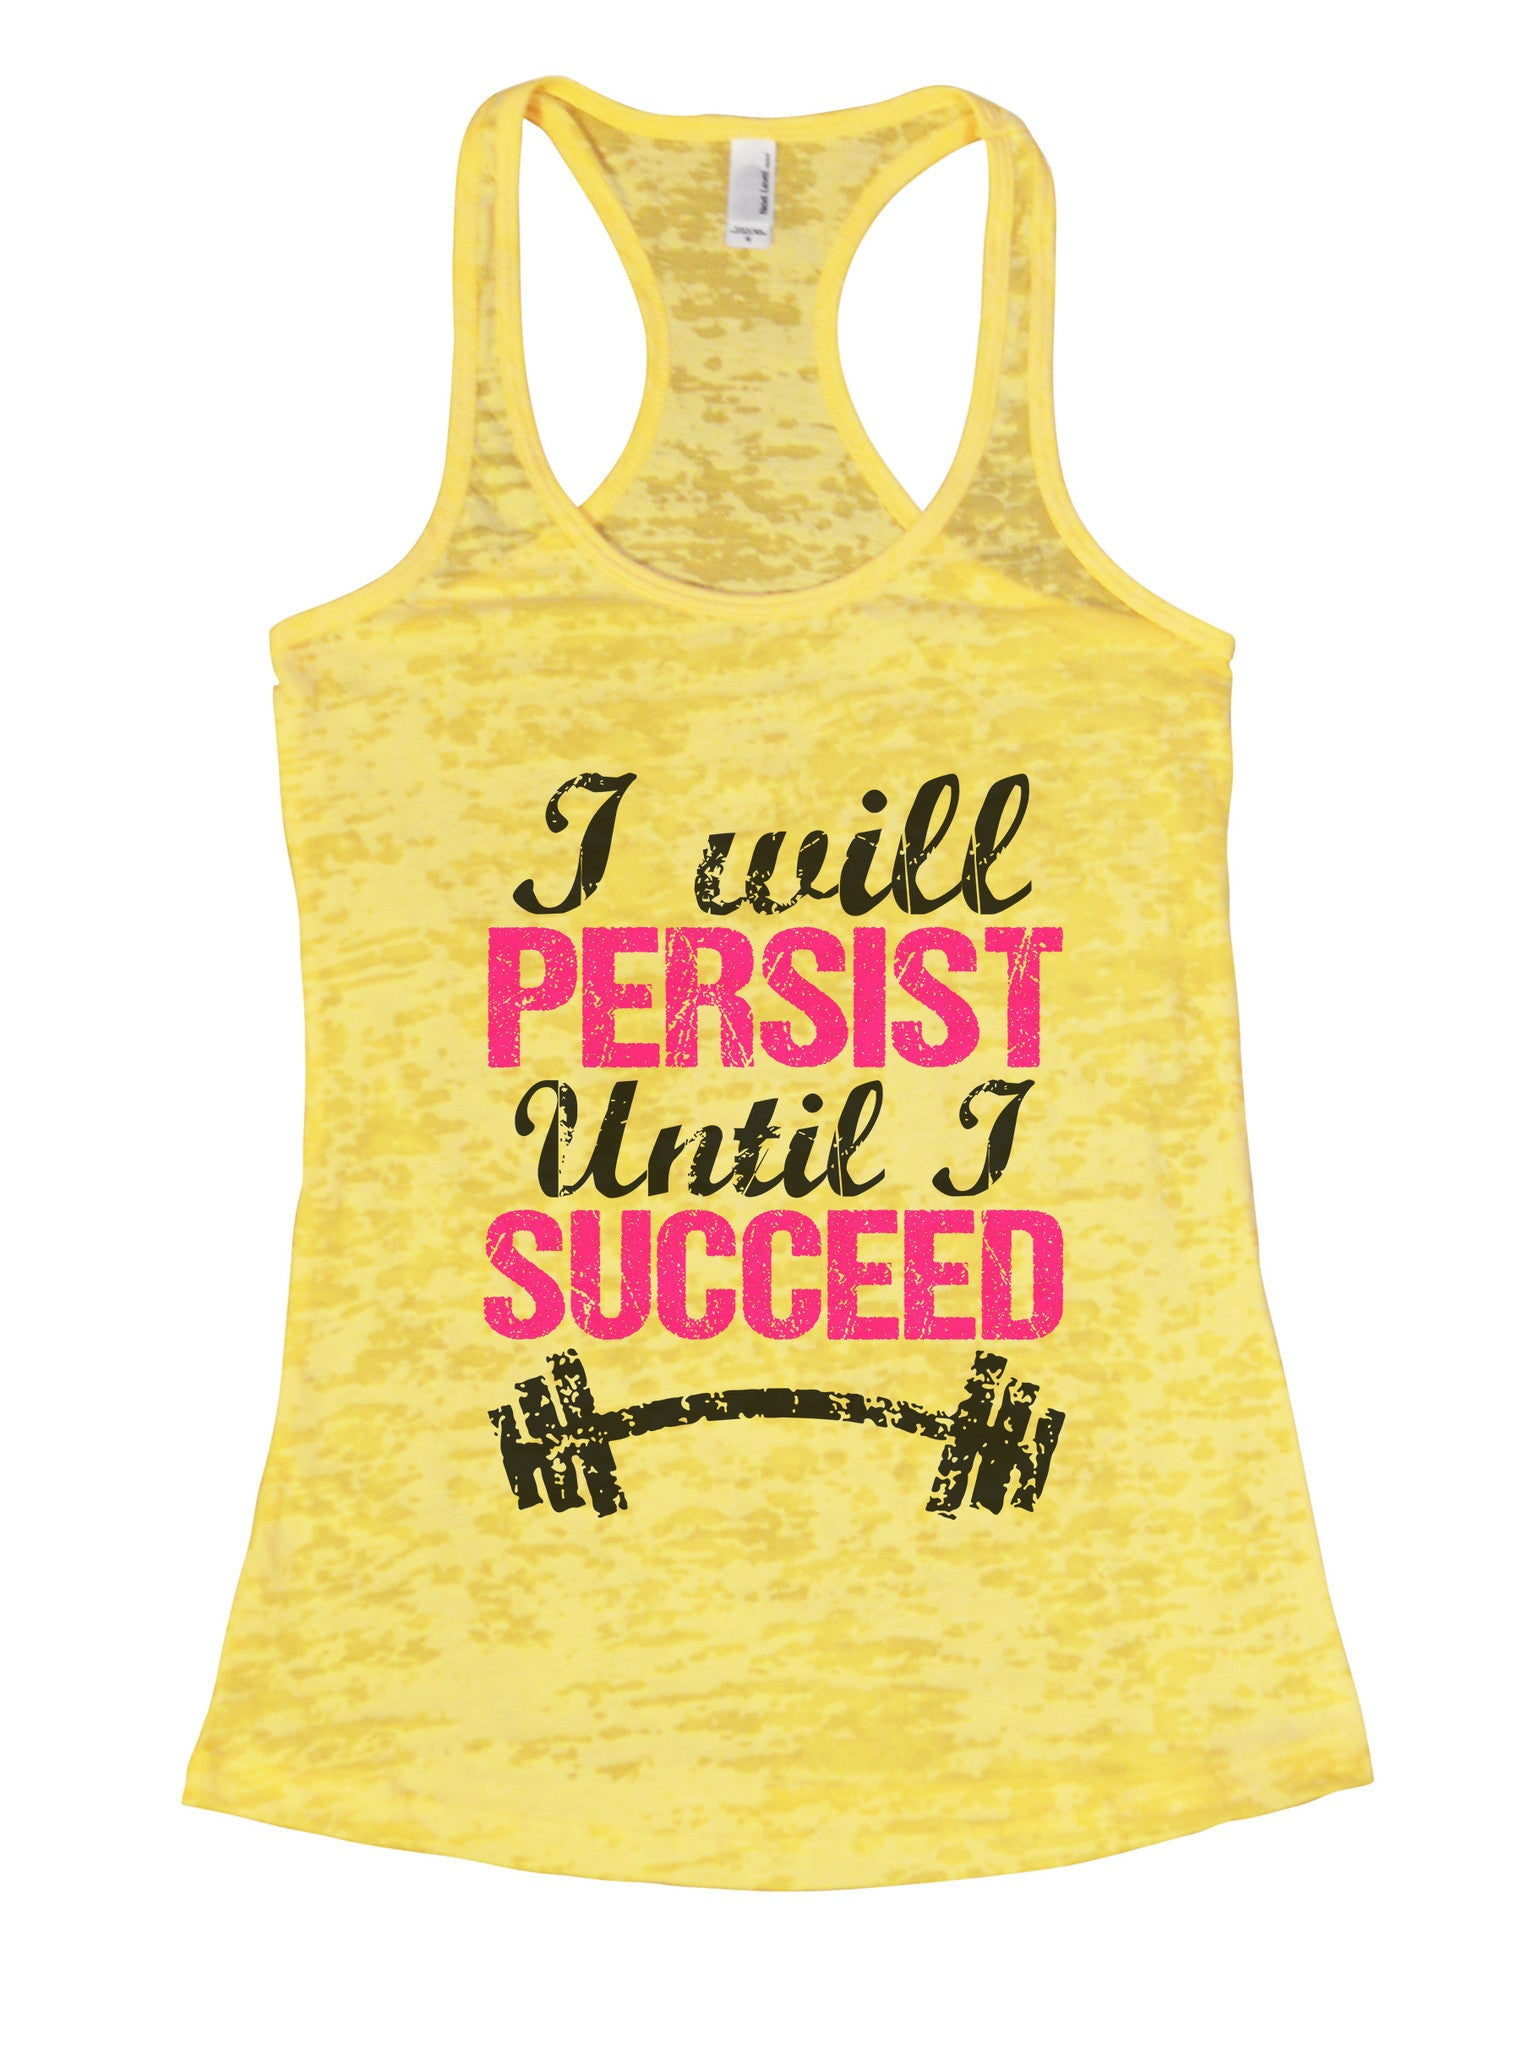 Womens Burnout Tank Top I Will Persist Until I Succeed Motivational Tank BurnoutTankTops.com - Funny Shirts Tank Tops Burnouts and Triblends  - 7